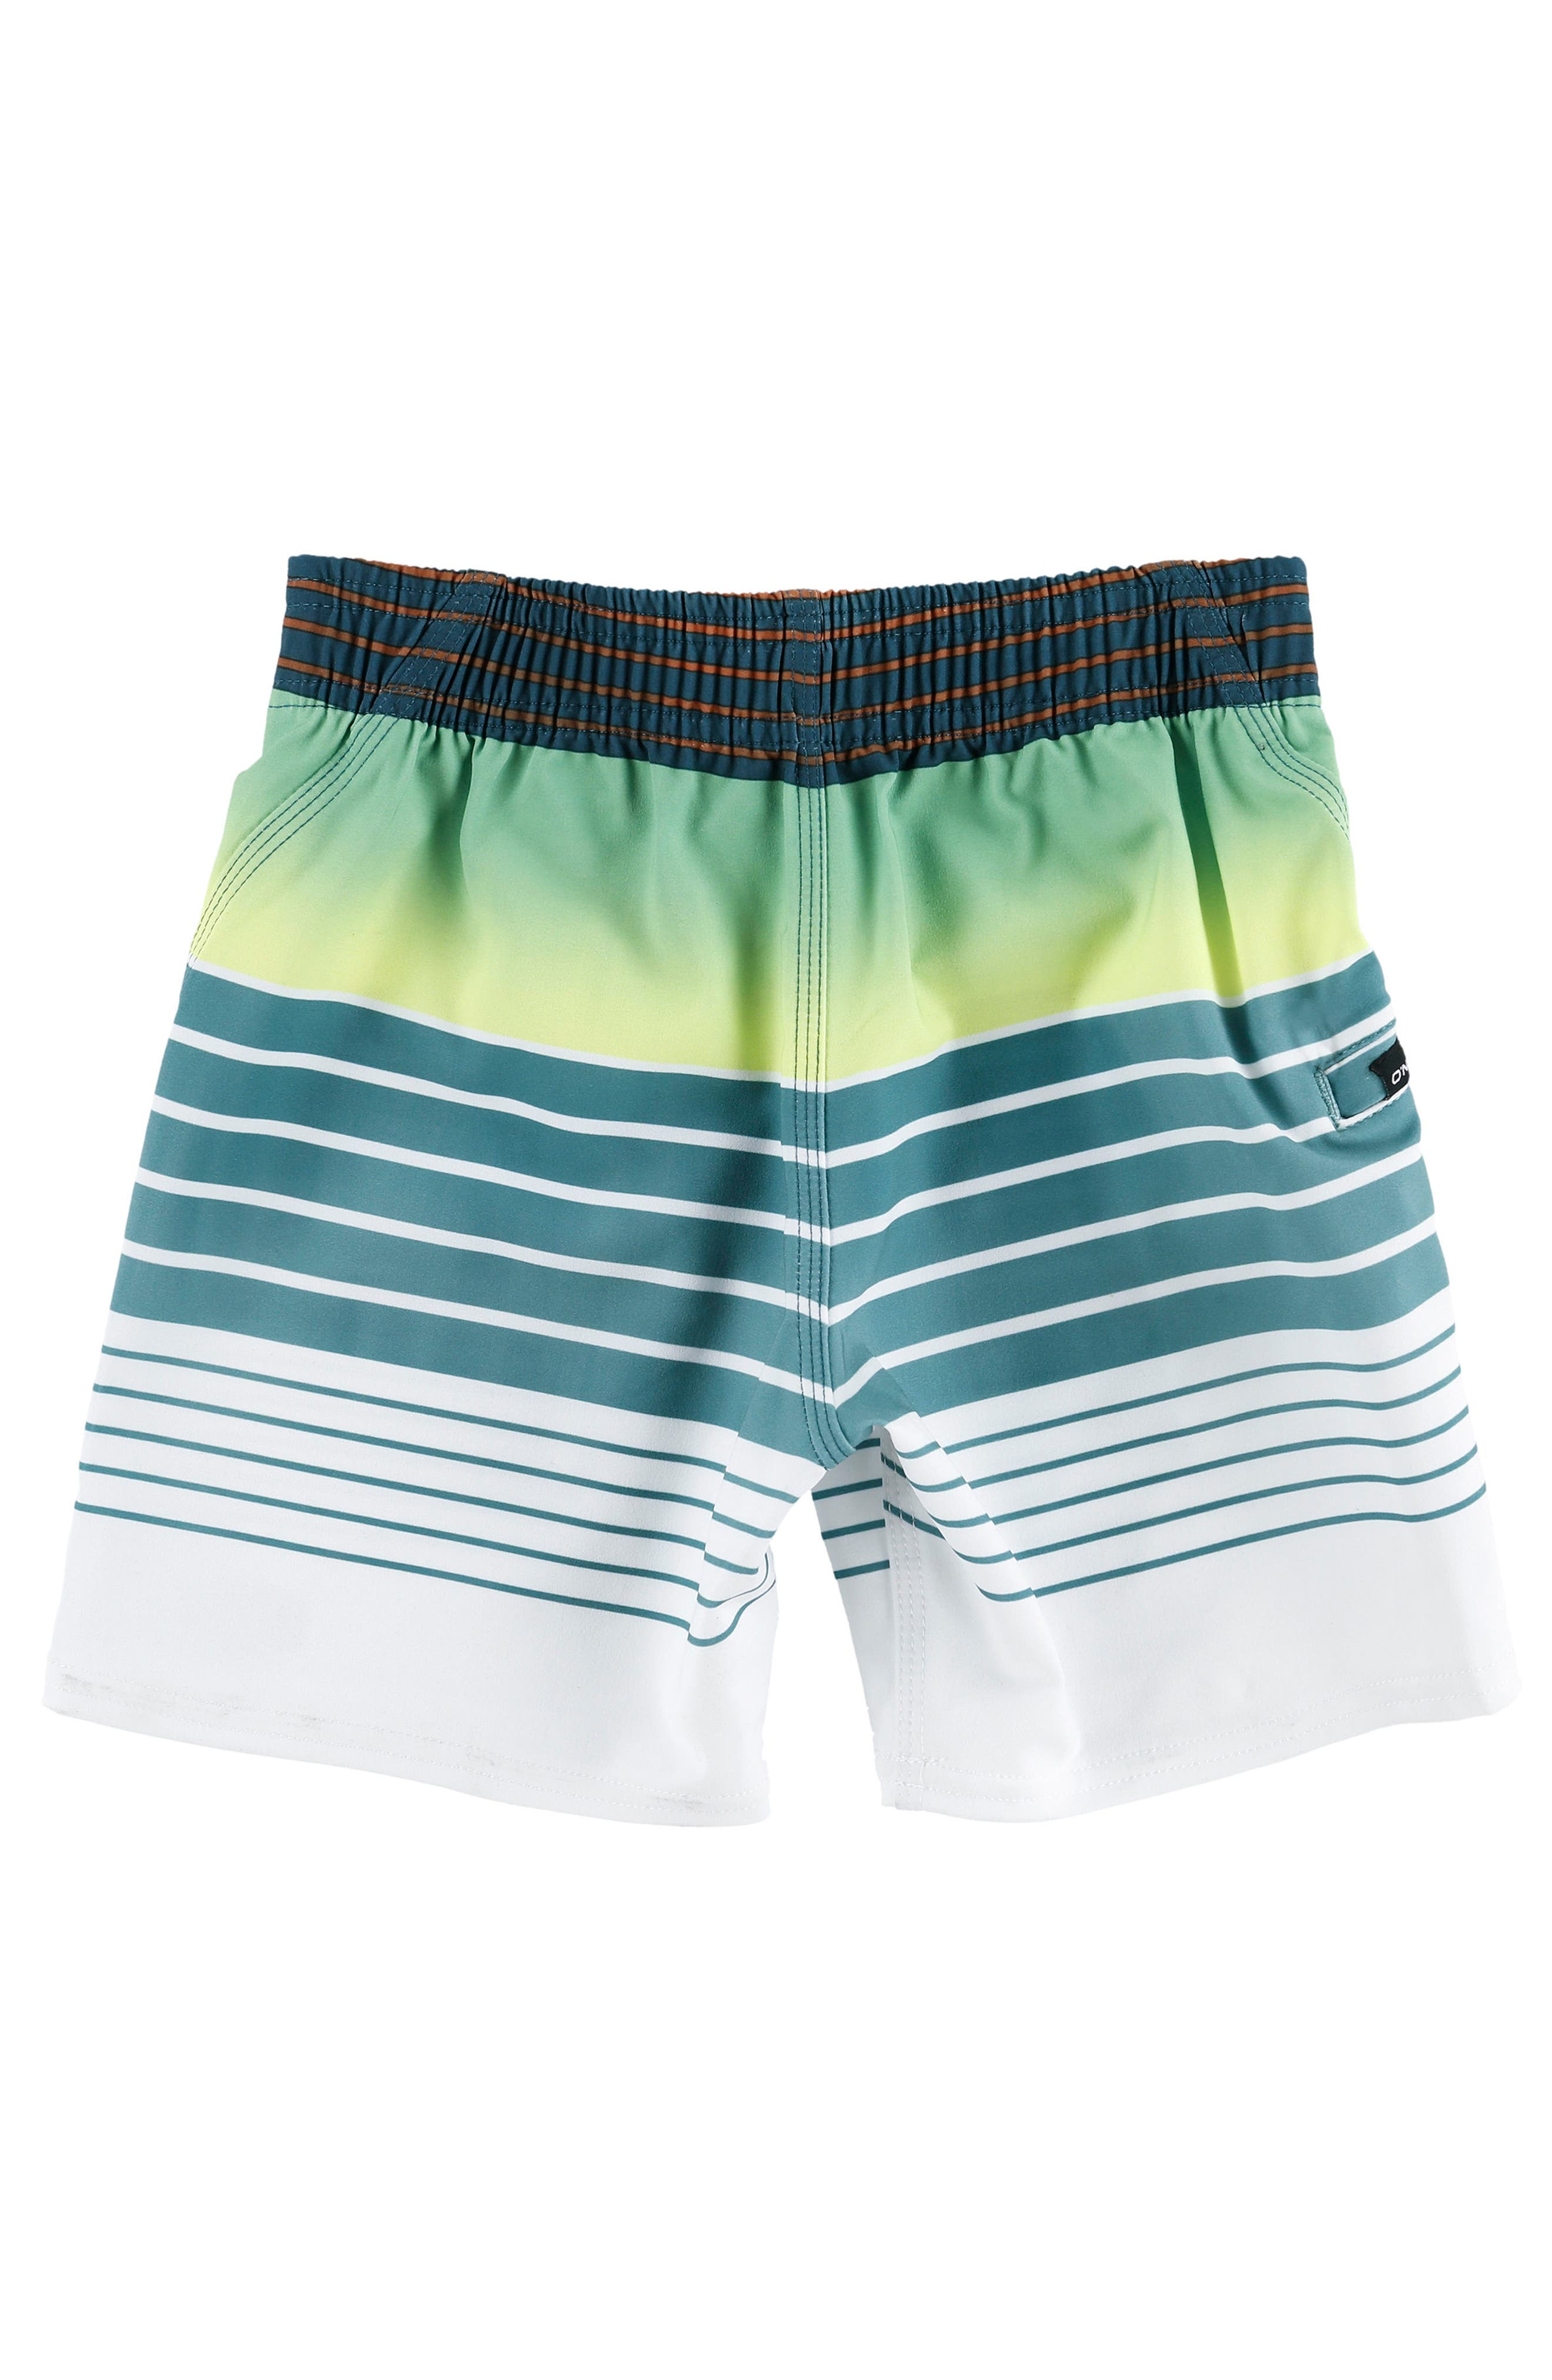 Hyperfreak Heist Board Shorts,                             Alternate thumbnail 15, color,